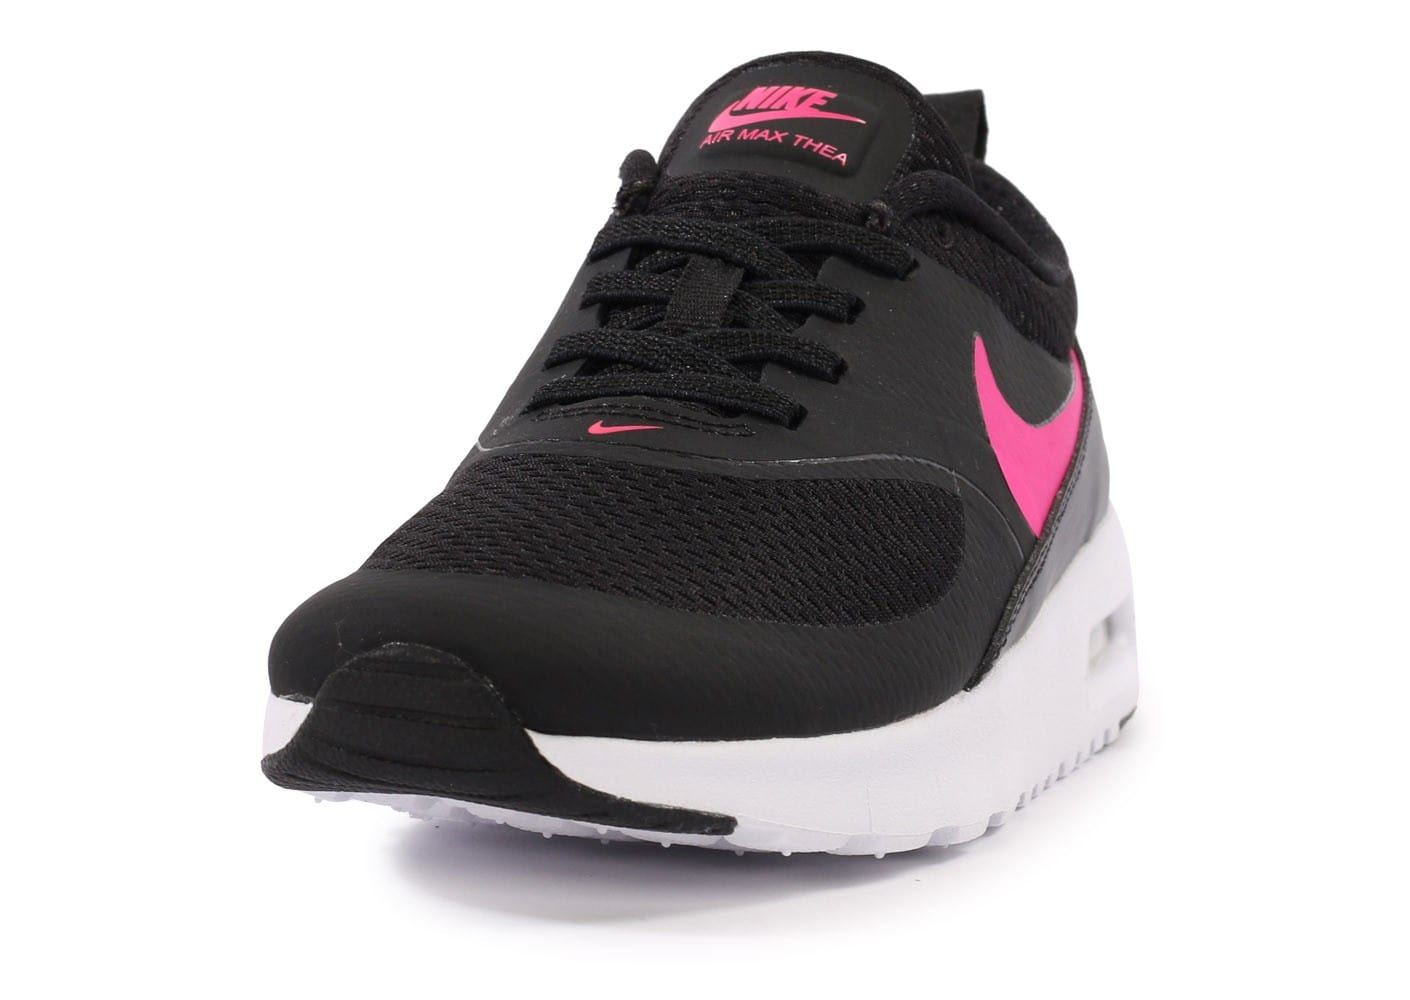 nike air max noir et rose. Black Bedroom Furniture Sets. Home Design Ideas